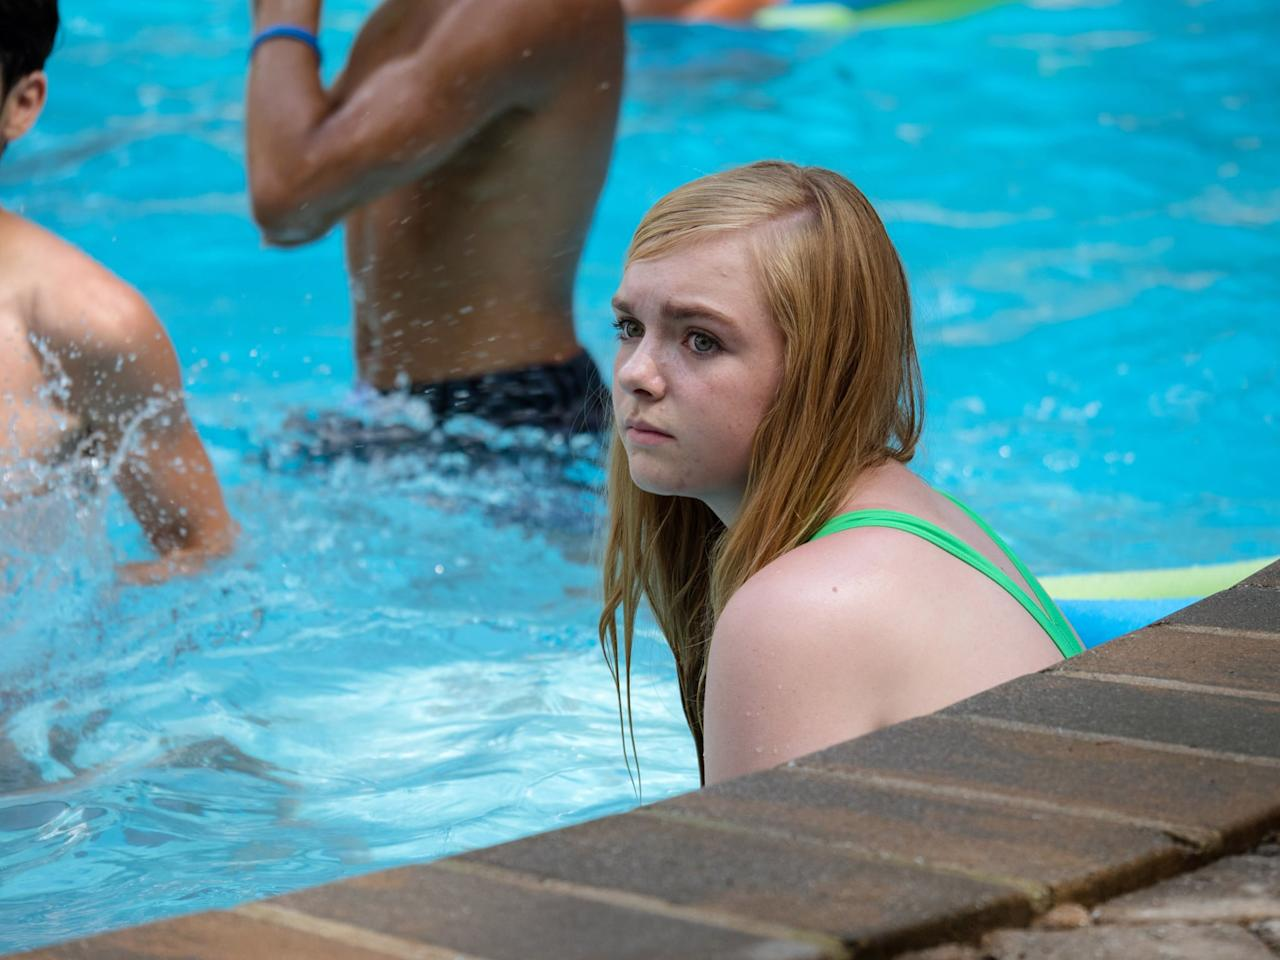 <p>Bo Burnham's directorial debut hinges around 13-year-old Kayla (Elsie Fisher) as she navigates the final week of her less-than-stellar eighth grade year. From her angsty interactions with her dad to genuine feelings of isolation while enduring the embarrassing effects of puberty, the dramedy casts a realistic lens on a formative time period.</p>